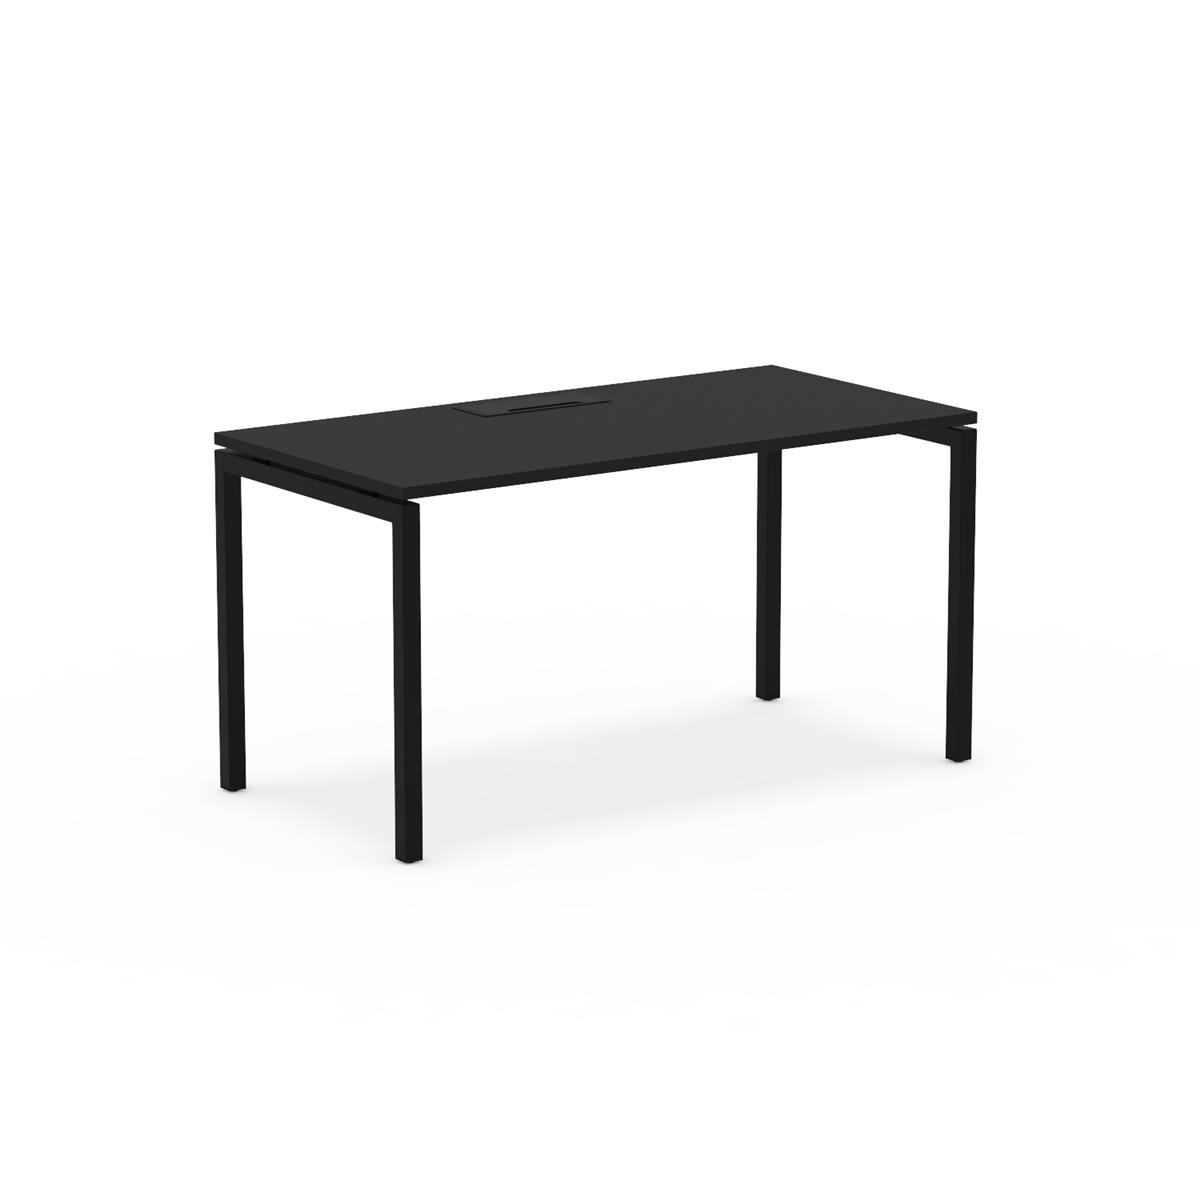 U1 Plane Table 140 x 70 - sort linoleum & kabelhåndtering